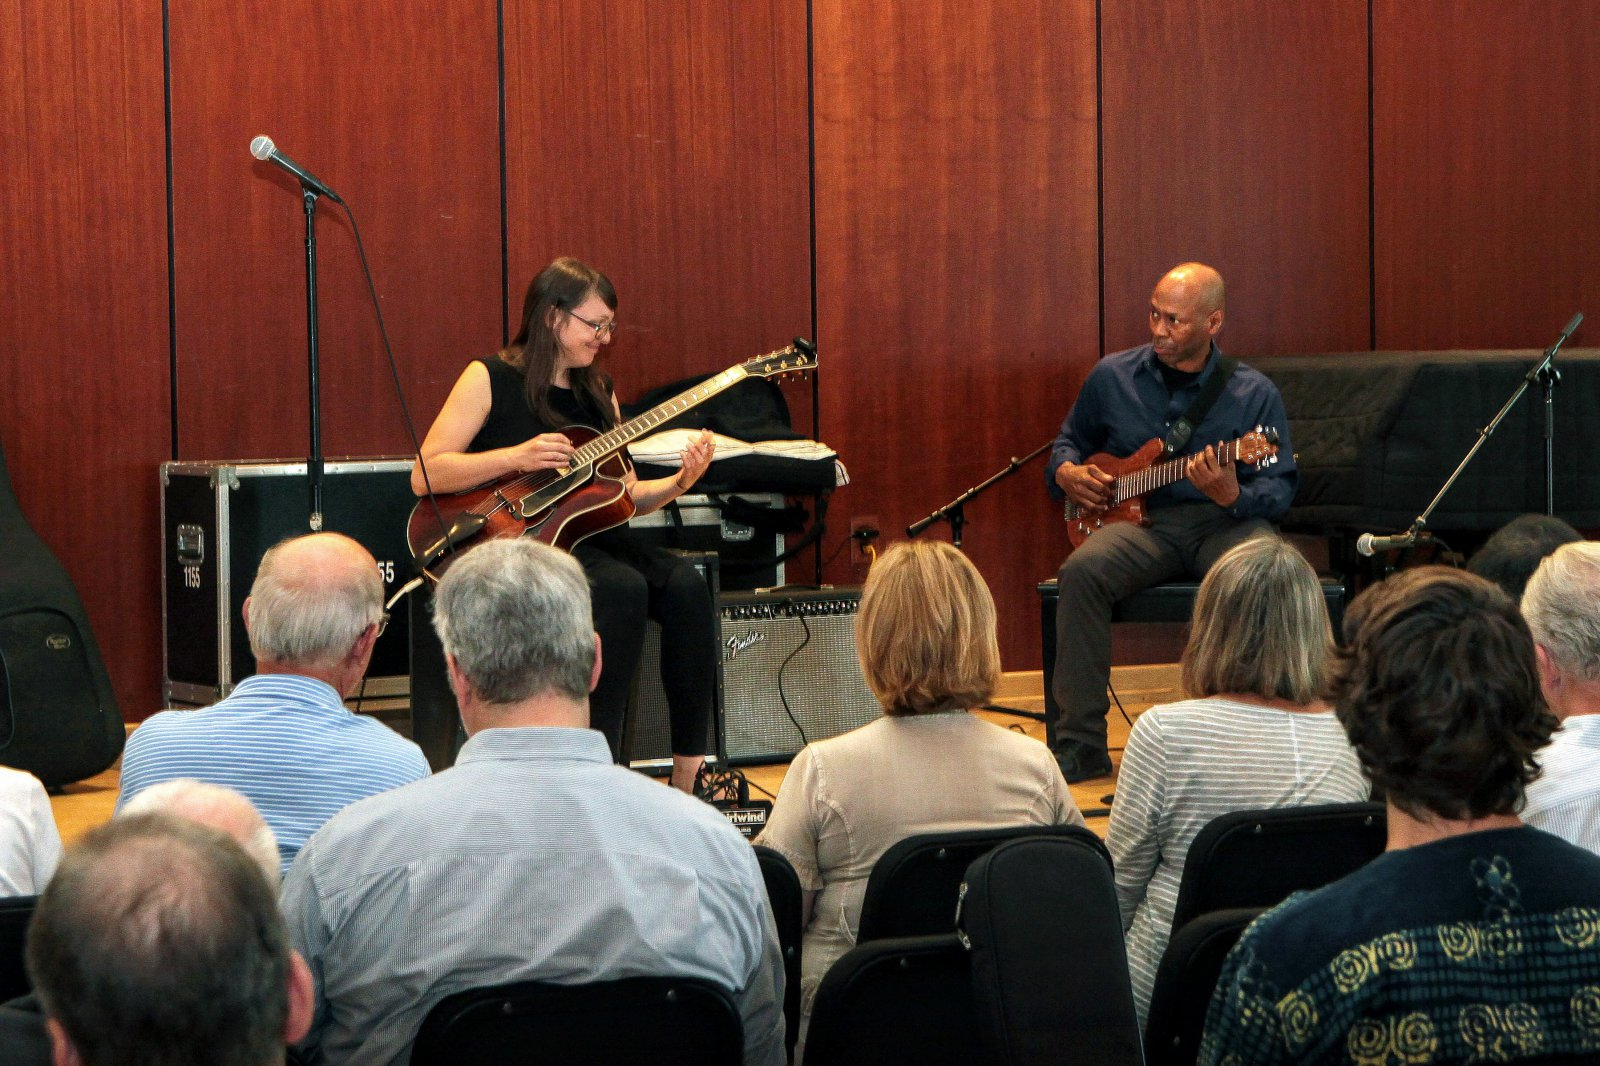 Jocelyn Gould from Winnipeg, Canada was voted 3rd Place in the Jazz category at the 2017 Wilson Center Guitar Festival competition